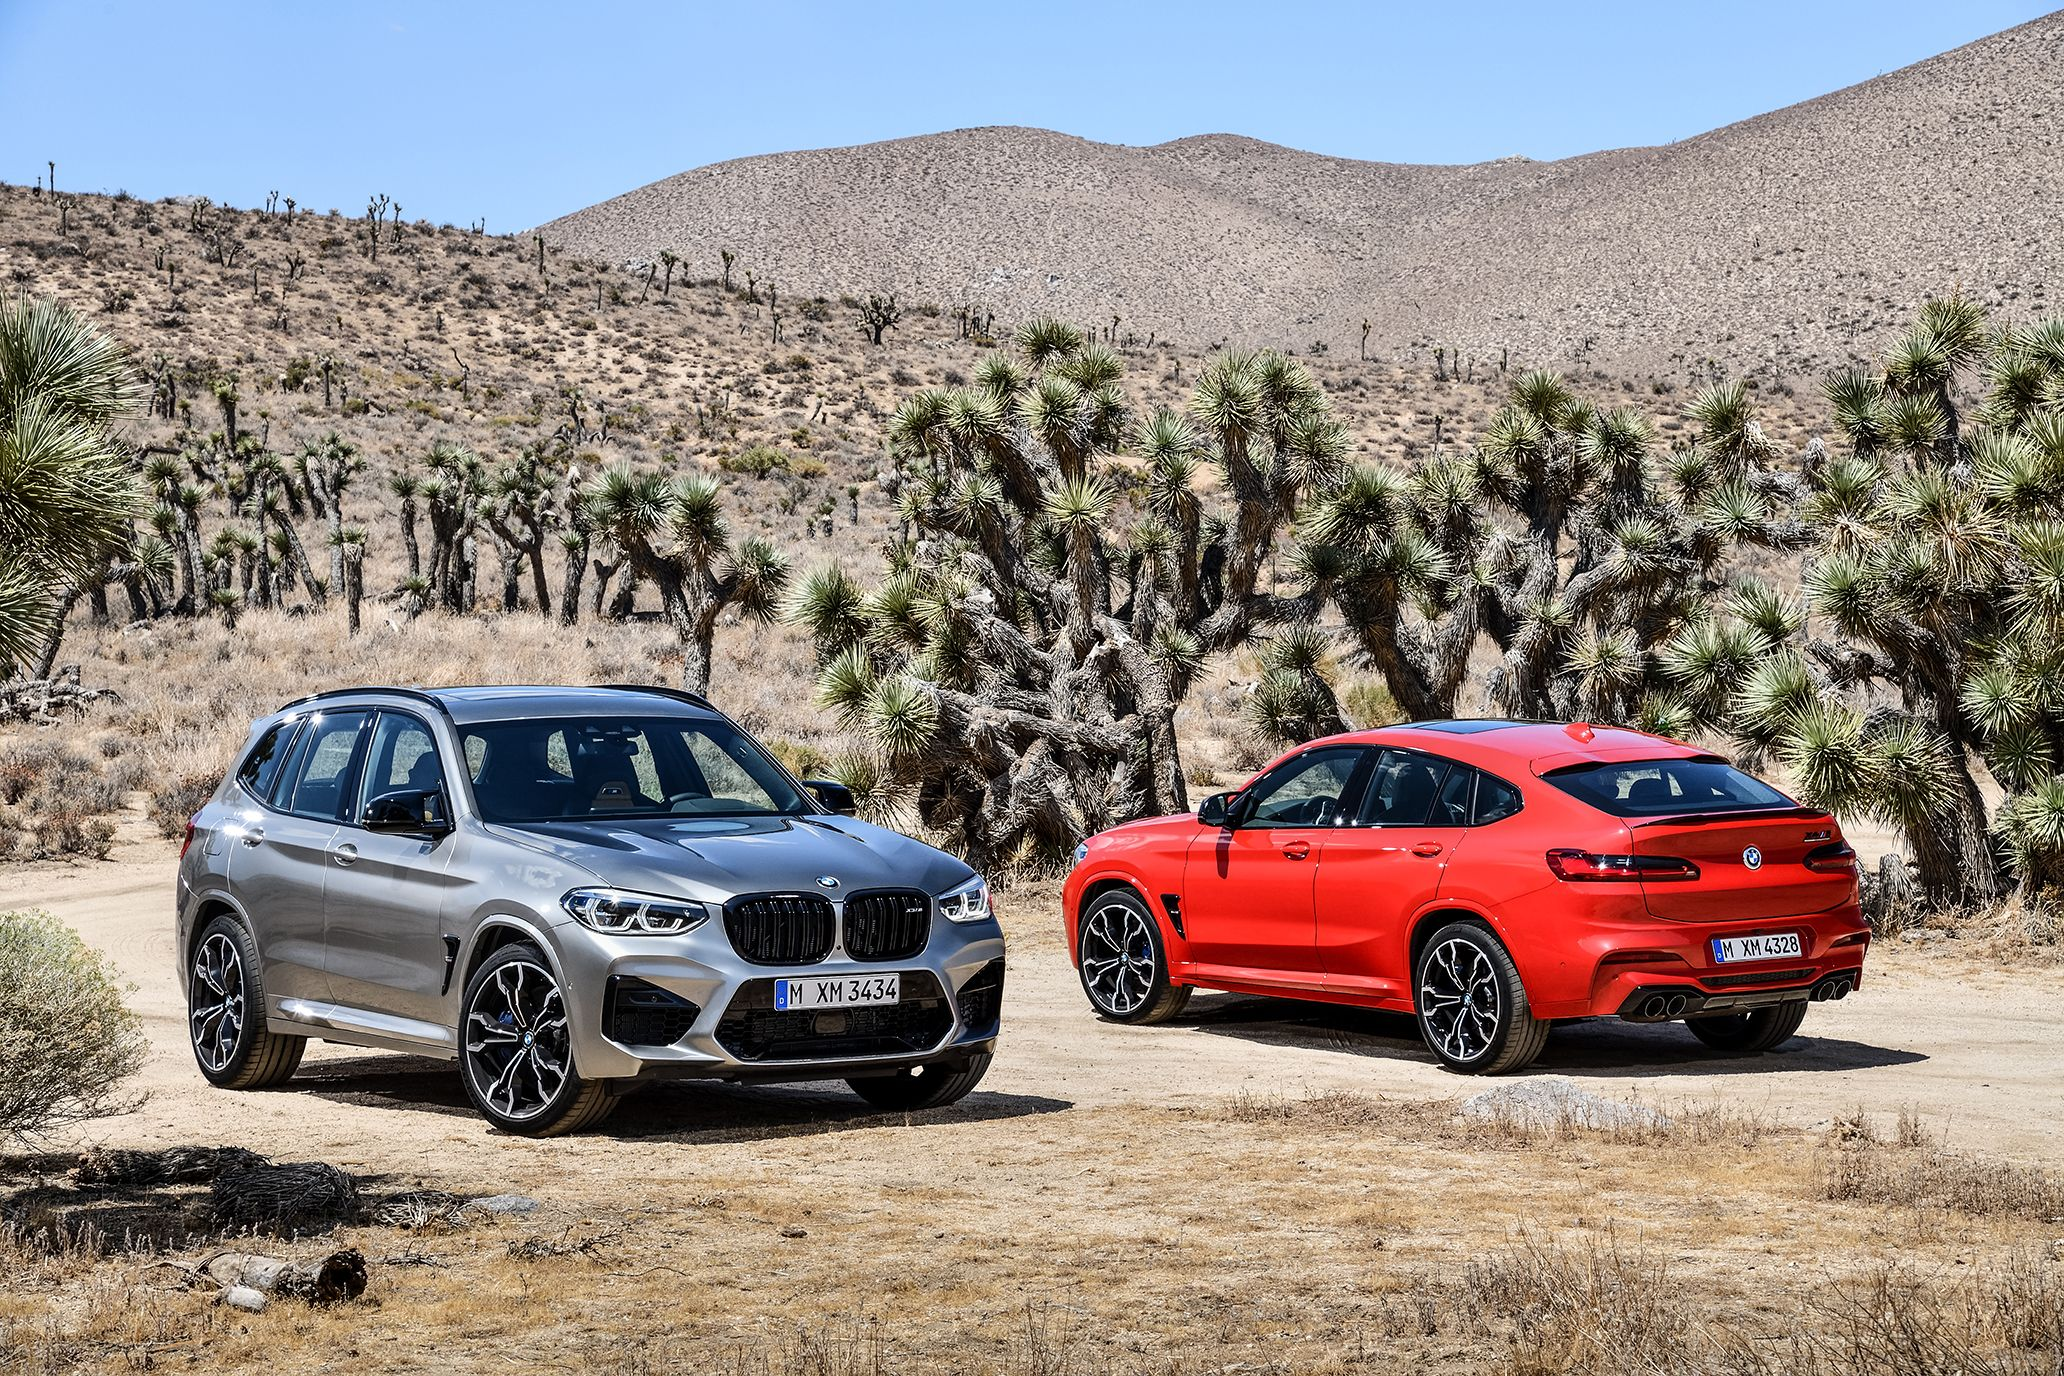 The 2020 BMW X3 and X4 M Competition Are Here With 503 Twin-Turbo Horsepower